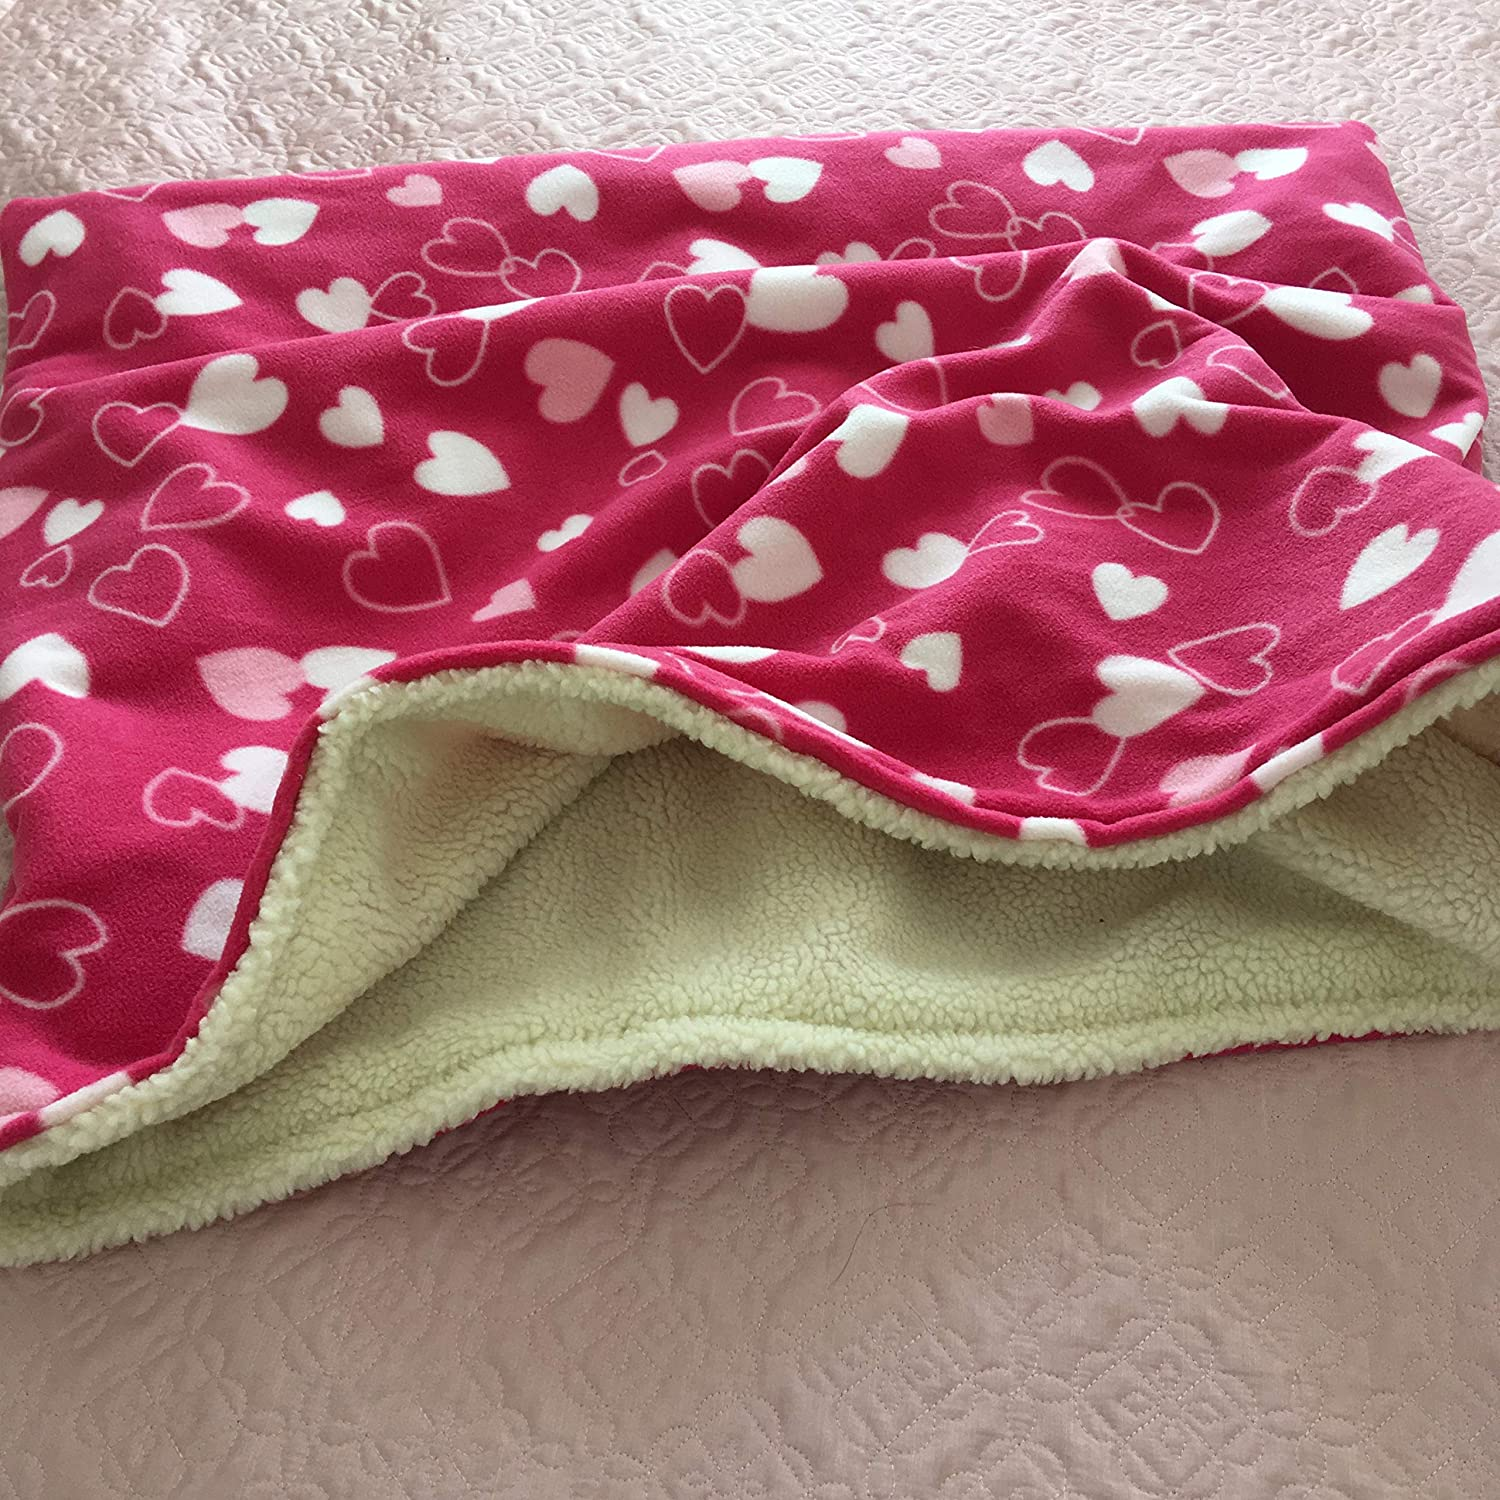 Dog Snuggle Sack//Cave Bed//Dog Bed 27x25 inches Pink Hearts